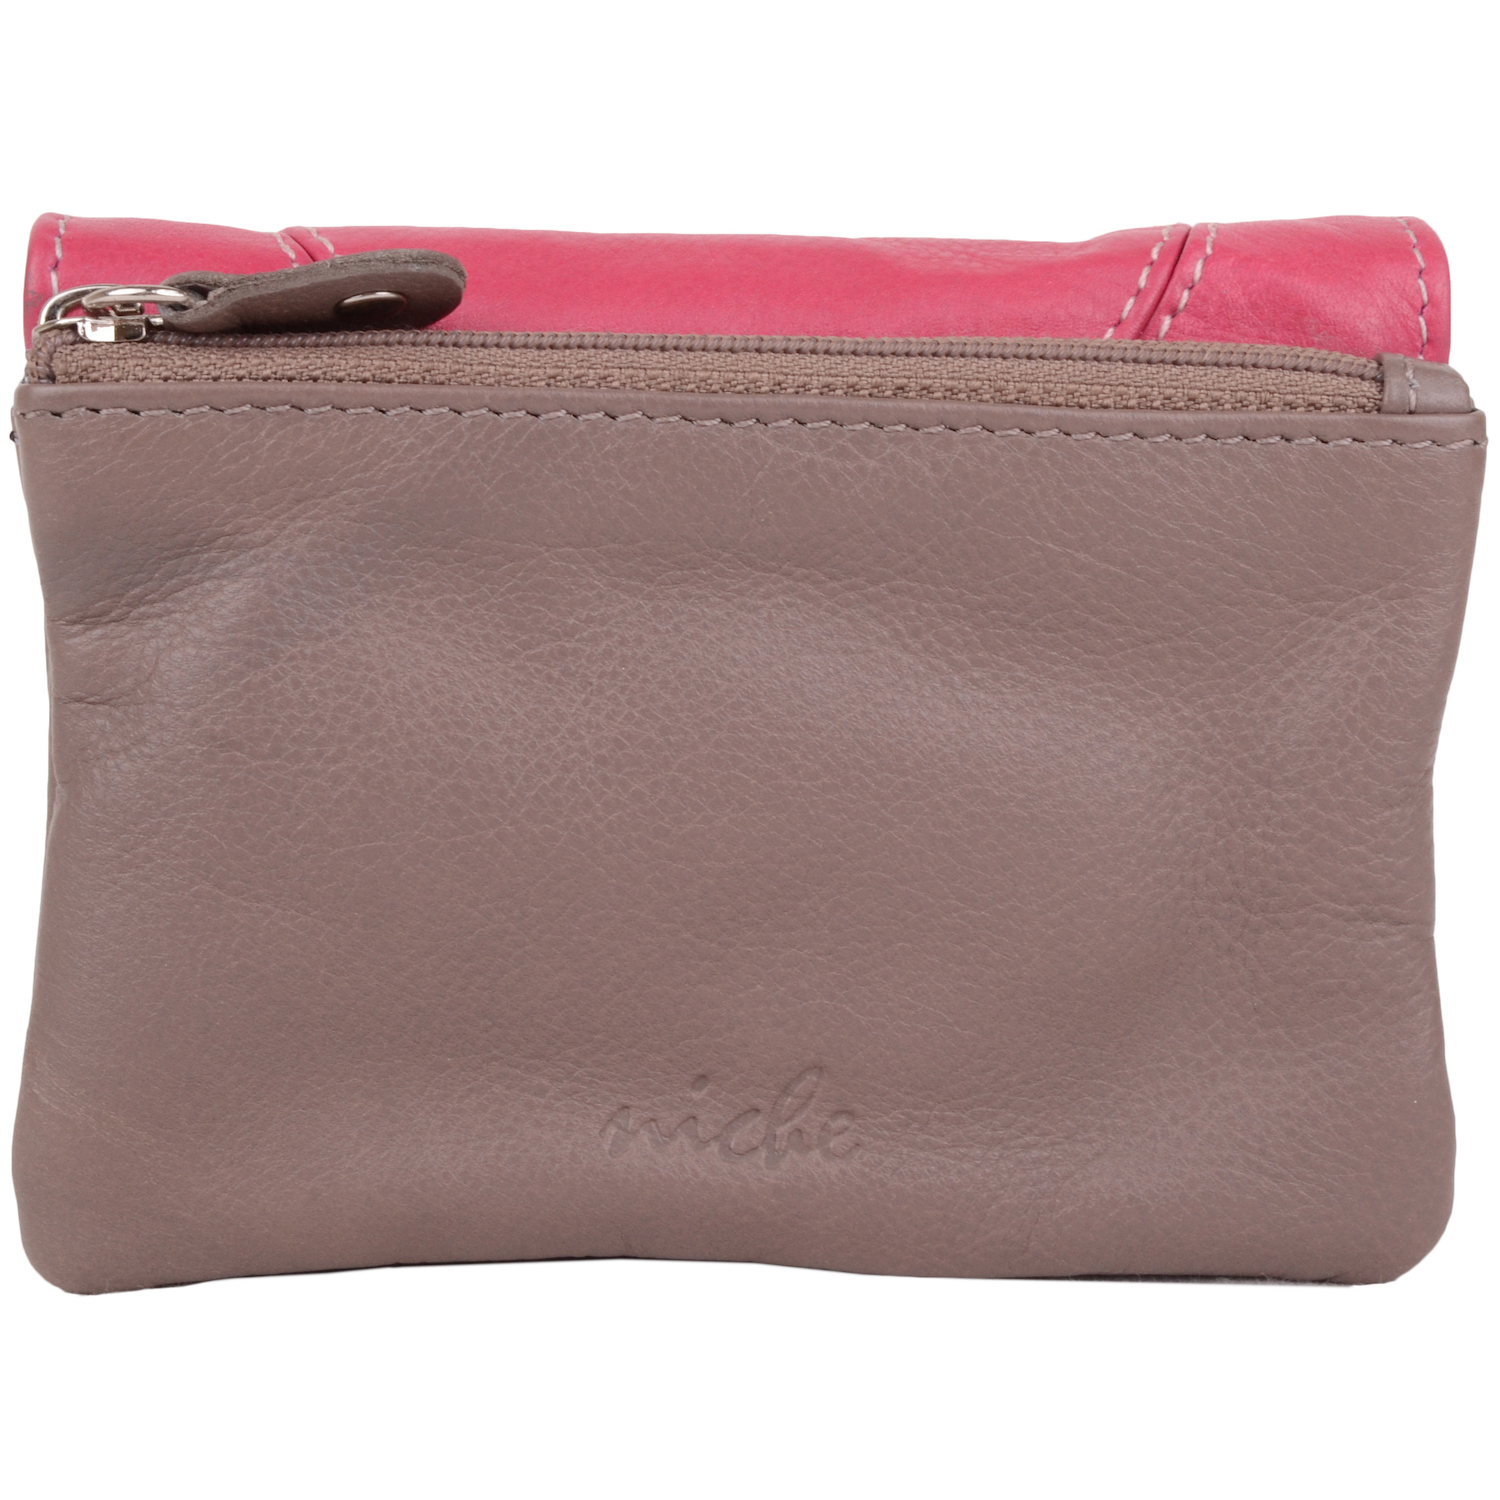 Soft Leather Coin Holder Purse - Skye - Taupe